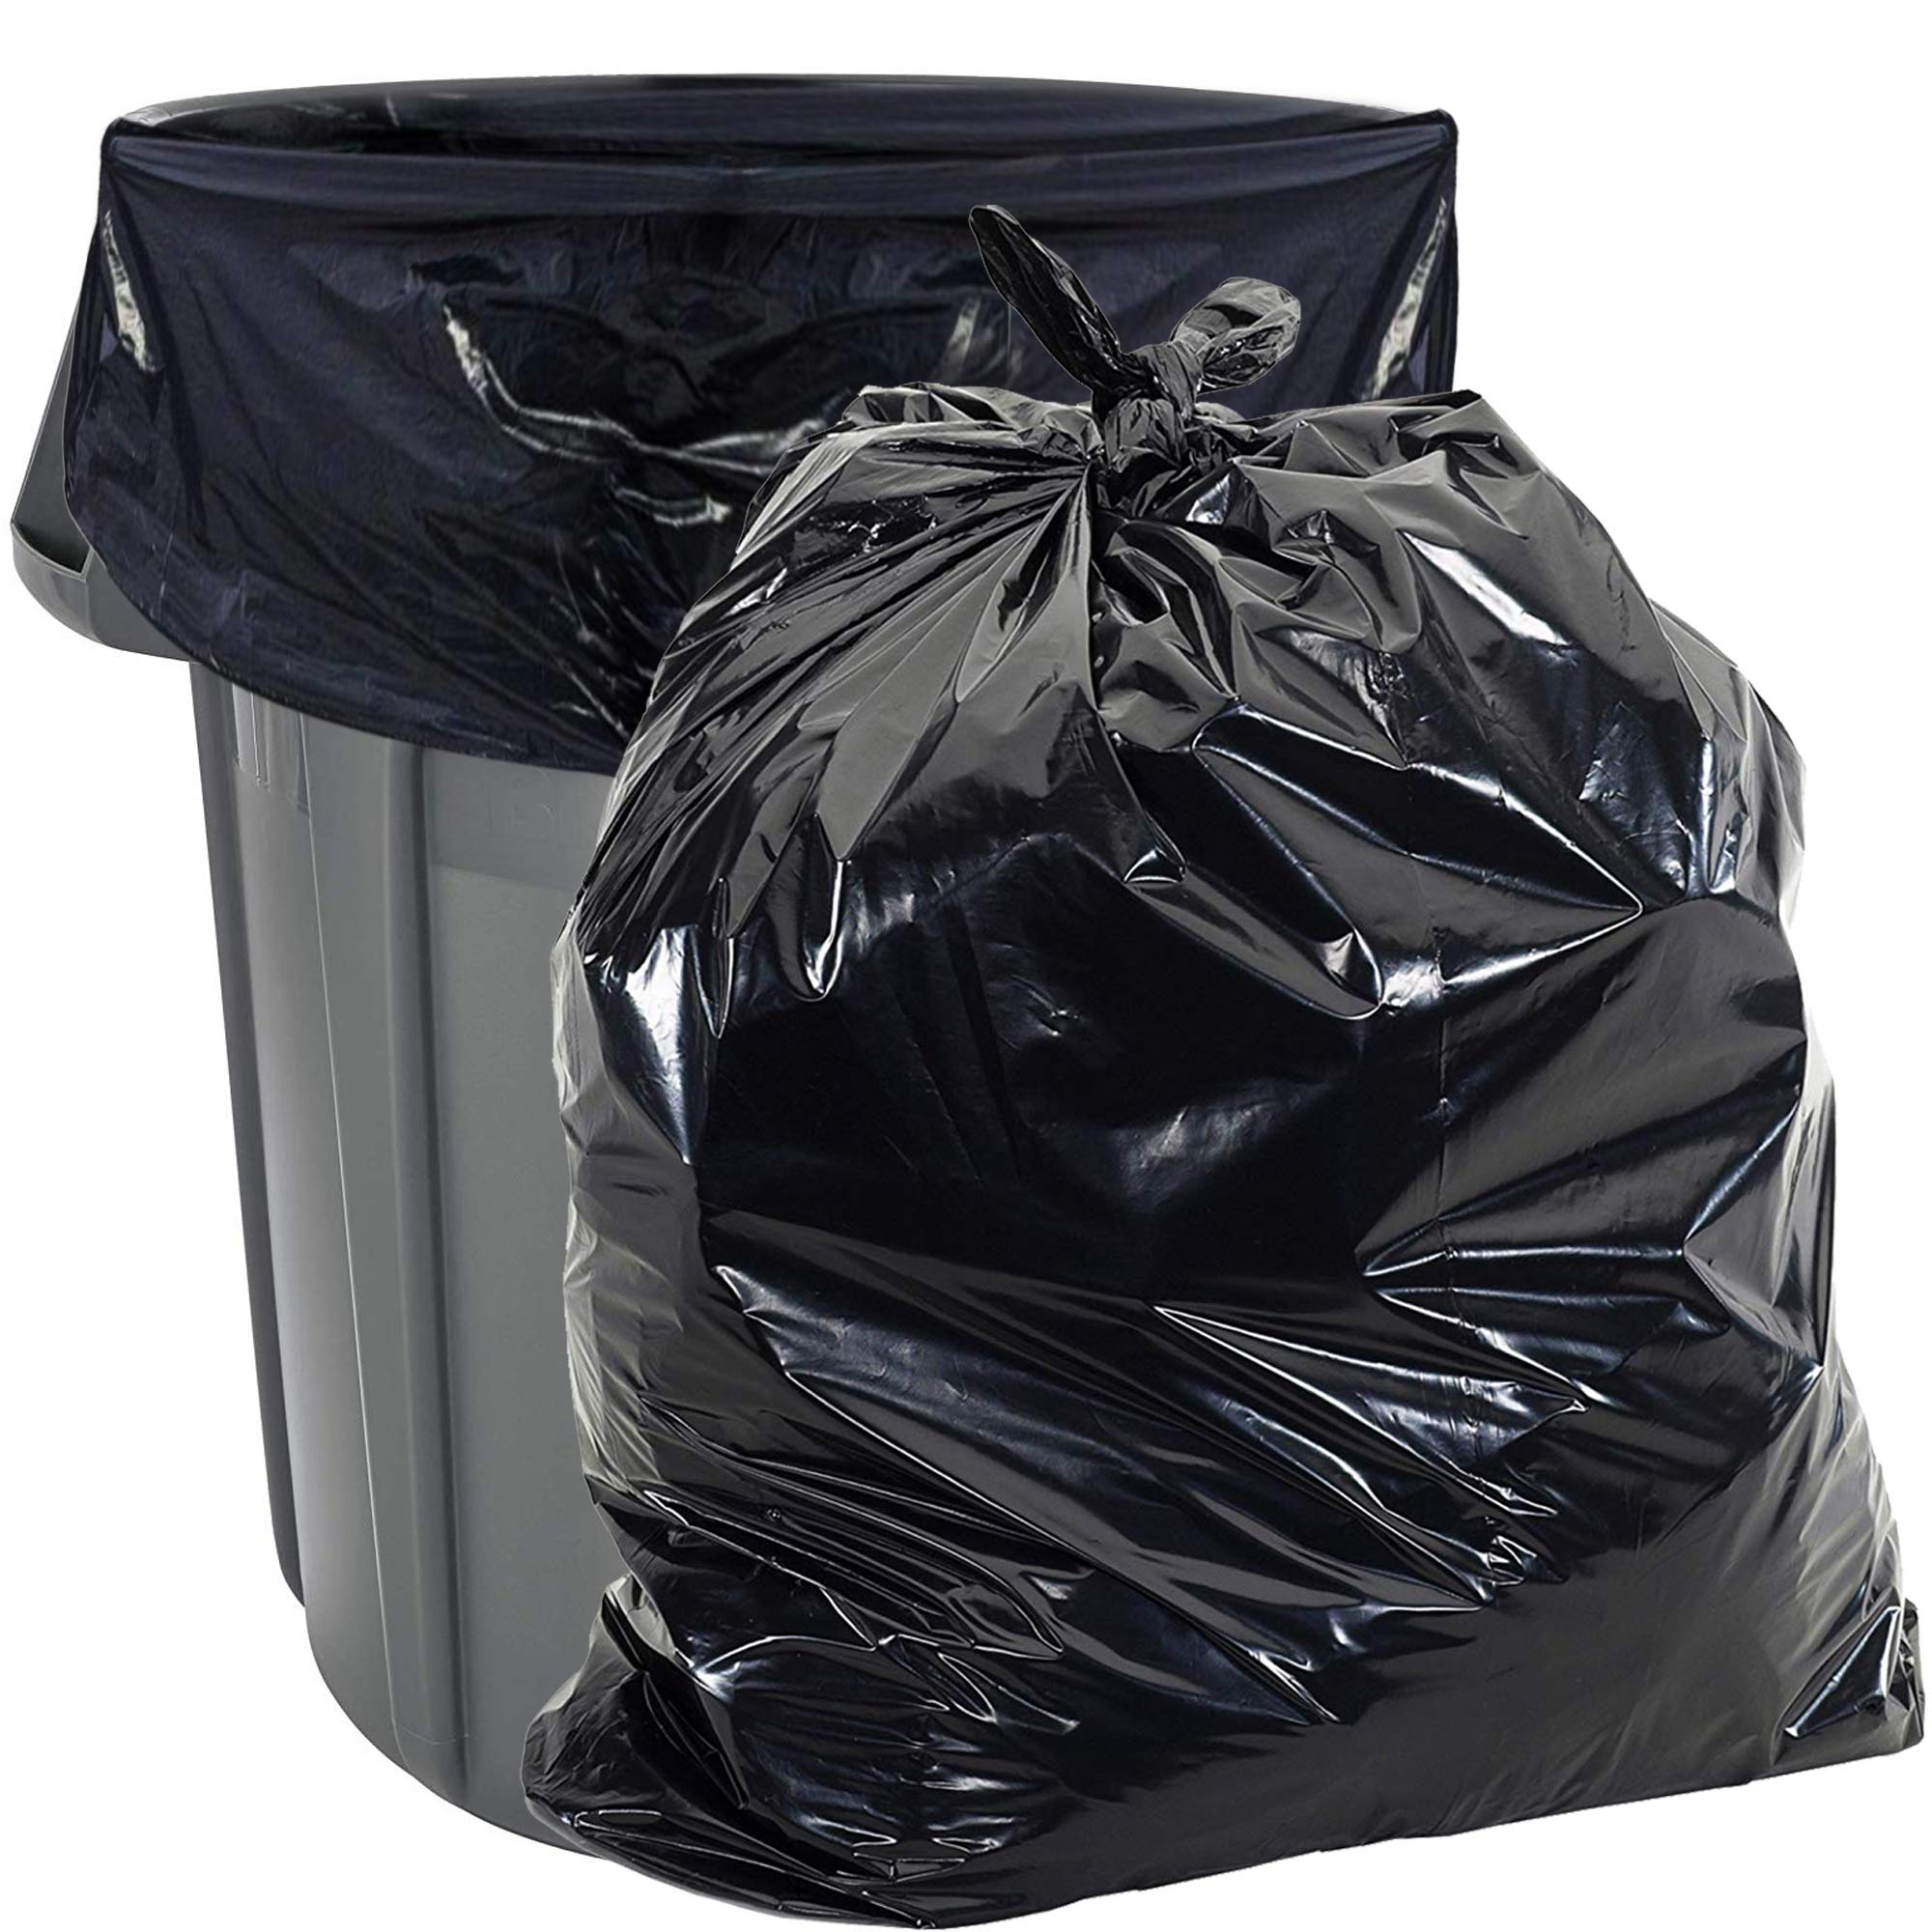 55 Gallon Trash Bags Heavy Duty - (Huge 100 Pack) - 2.0 MIL Thick - 38'' x 58'' - Garbage Bags for Toter, Contractors, Lawn, Leaf, Yard Waste, Commercial, Kitchen, Industrial, Construction, Garage by Aluf Plastics